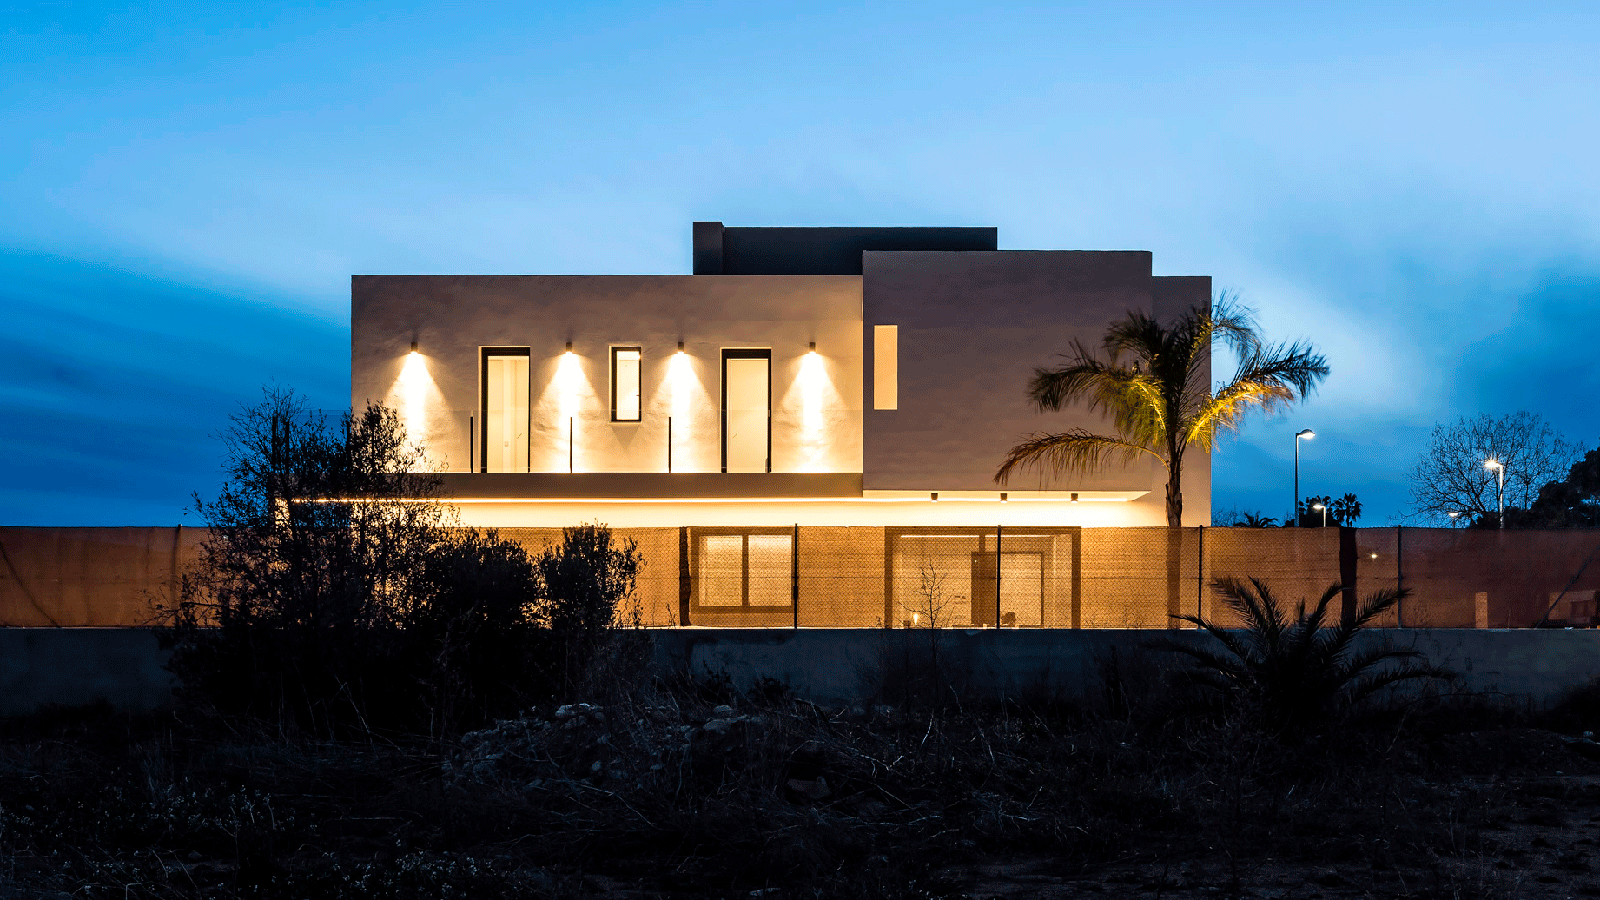 The 11th Porcelanosa Awards: sensory architecture for the Masías single-family home